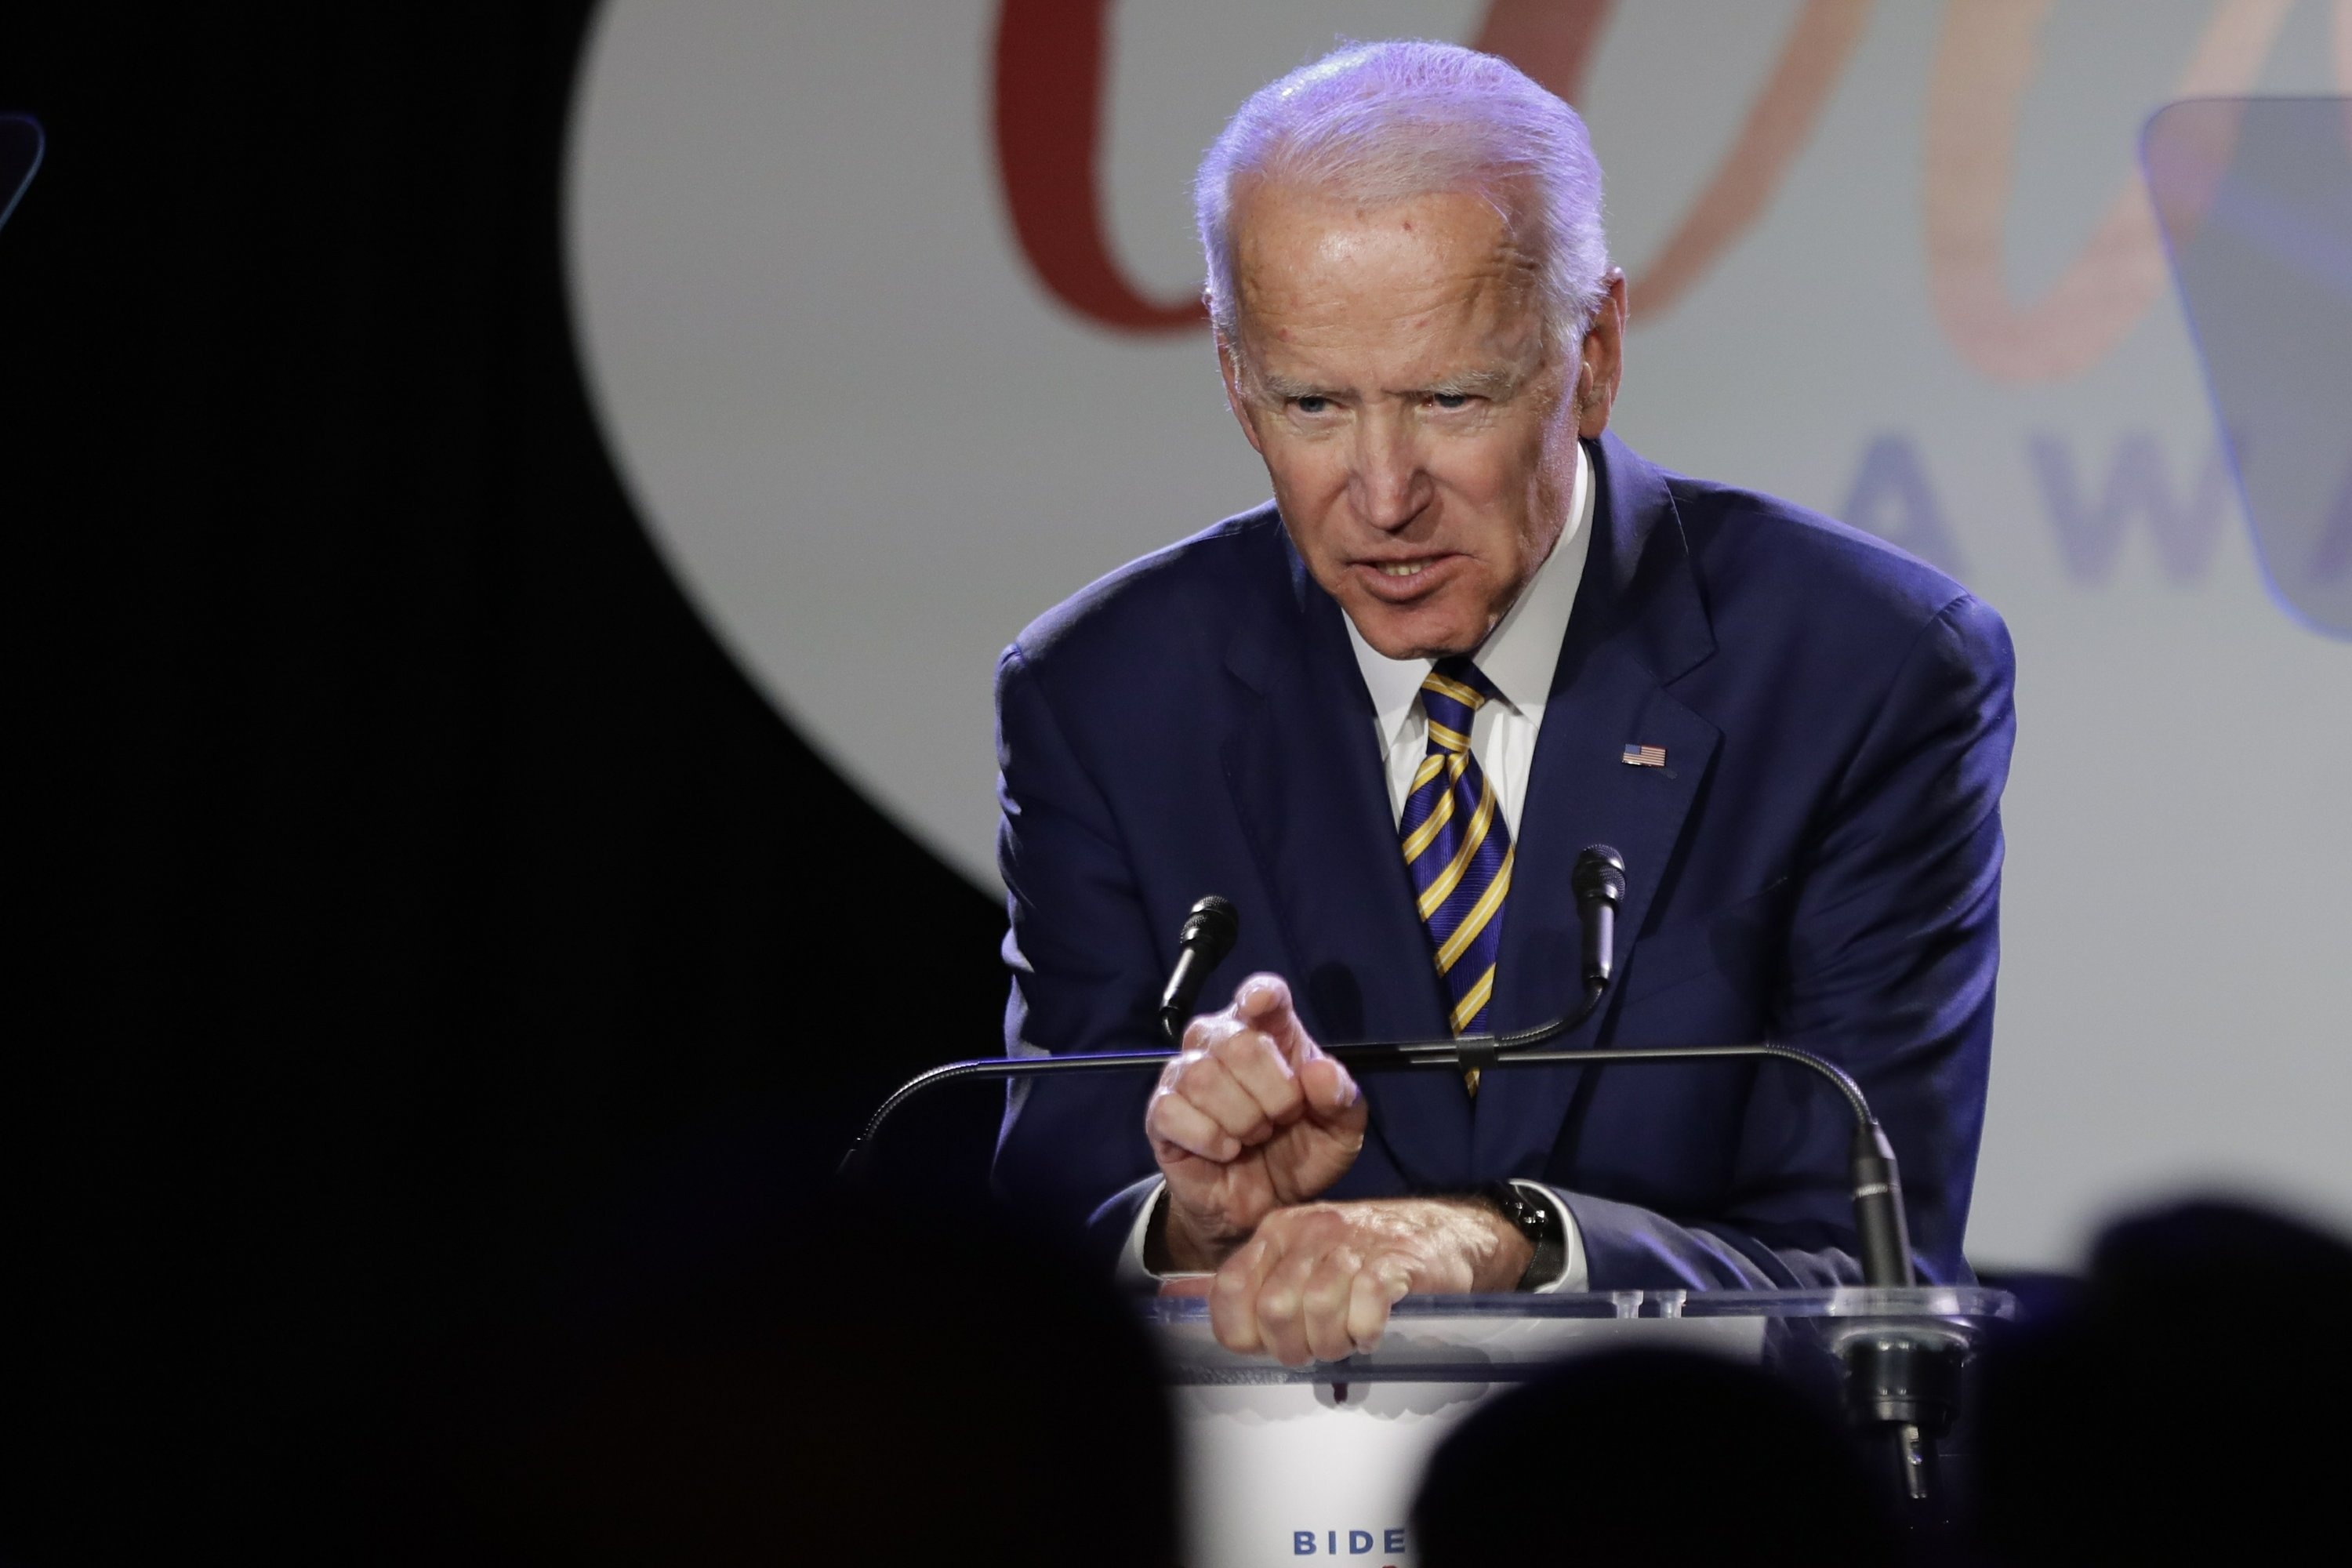 Ex-Vice President Joe Biden launches 2020 White House bid